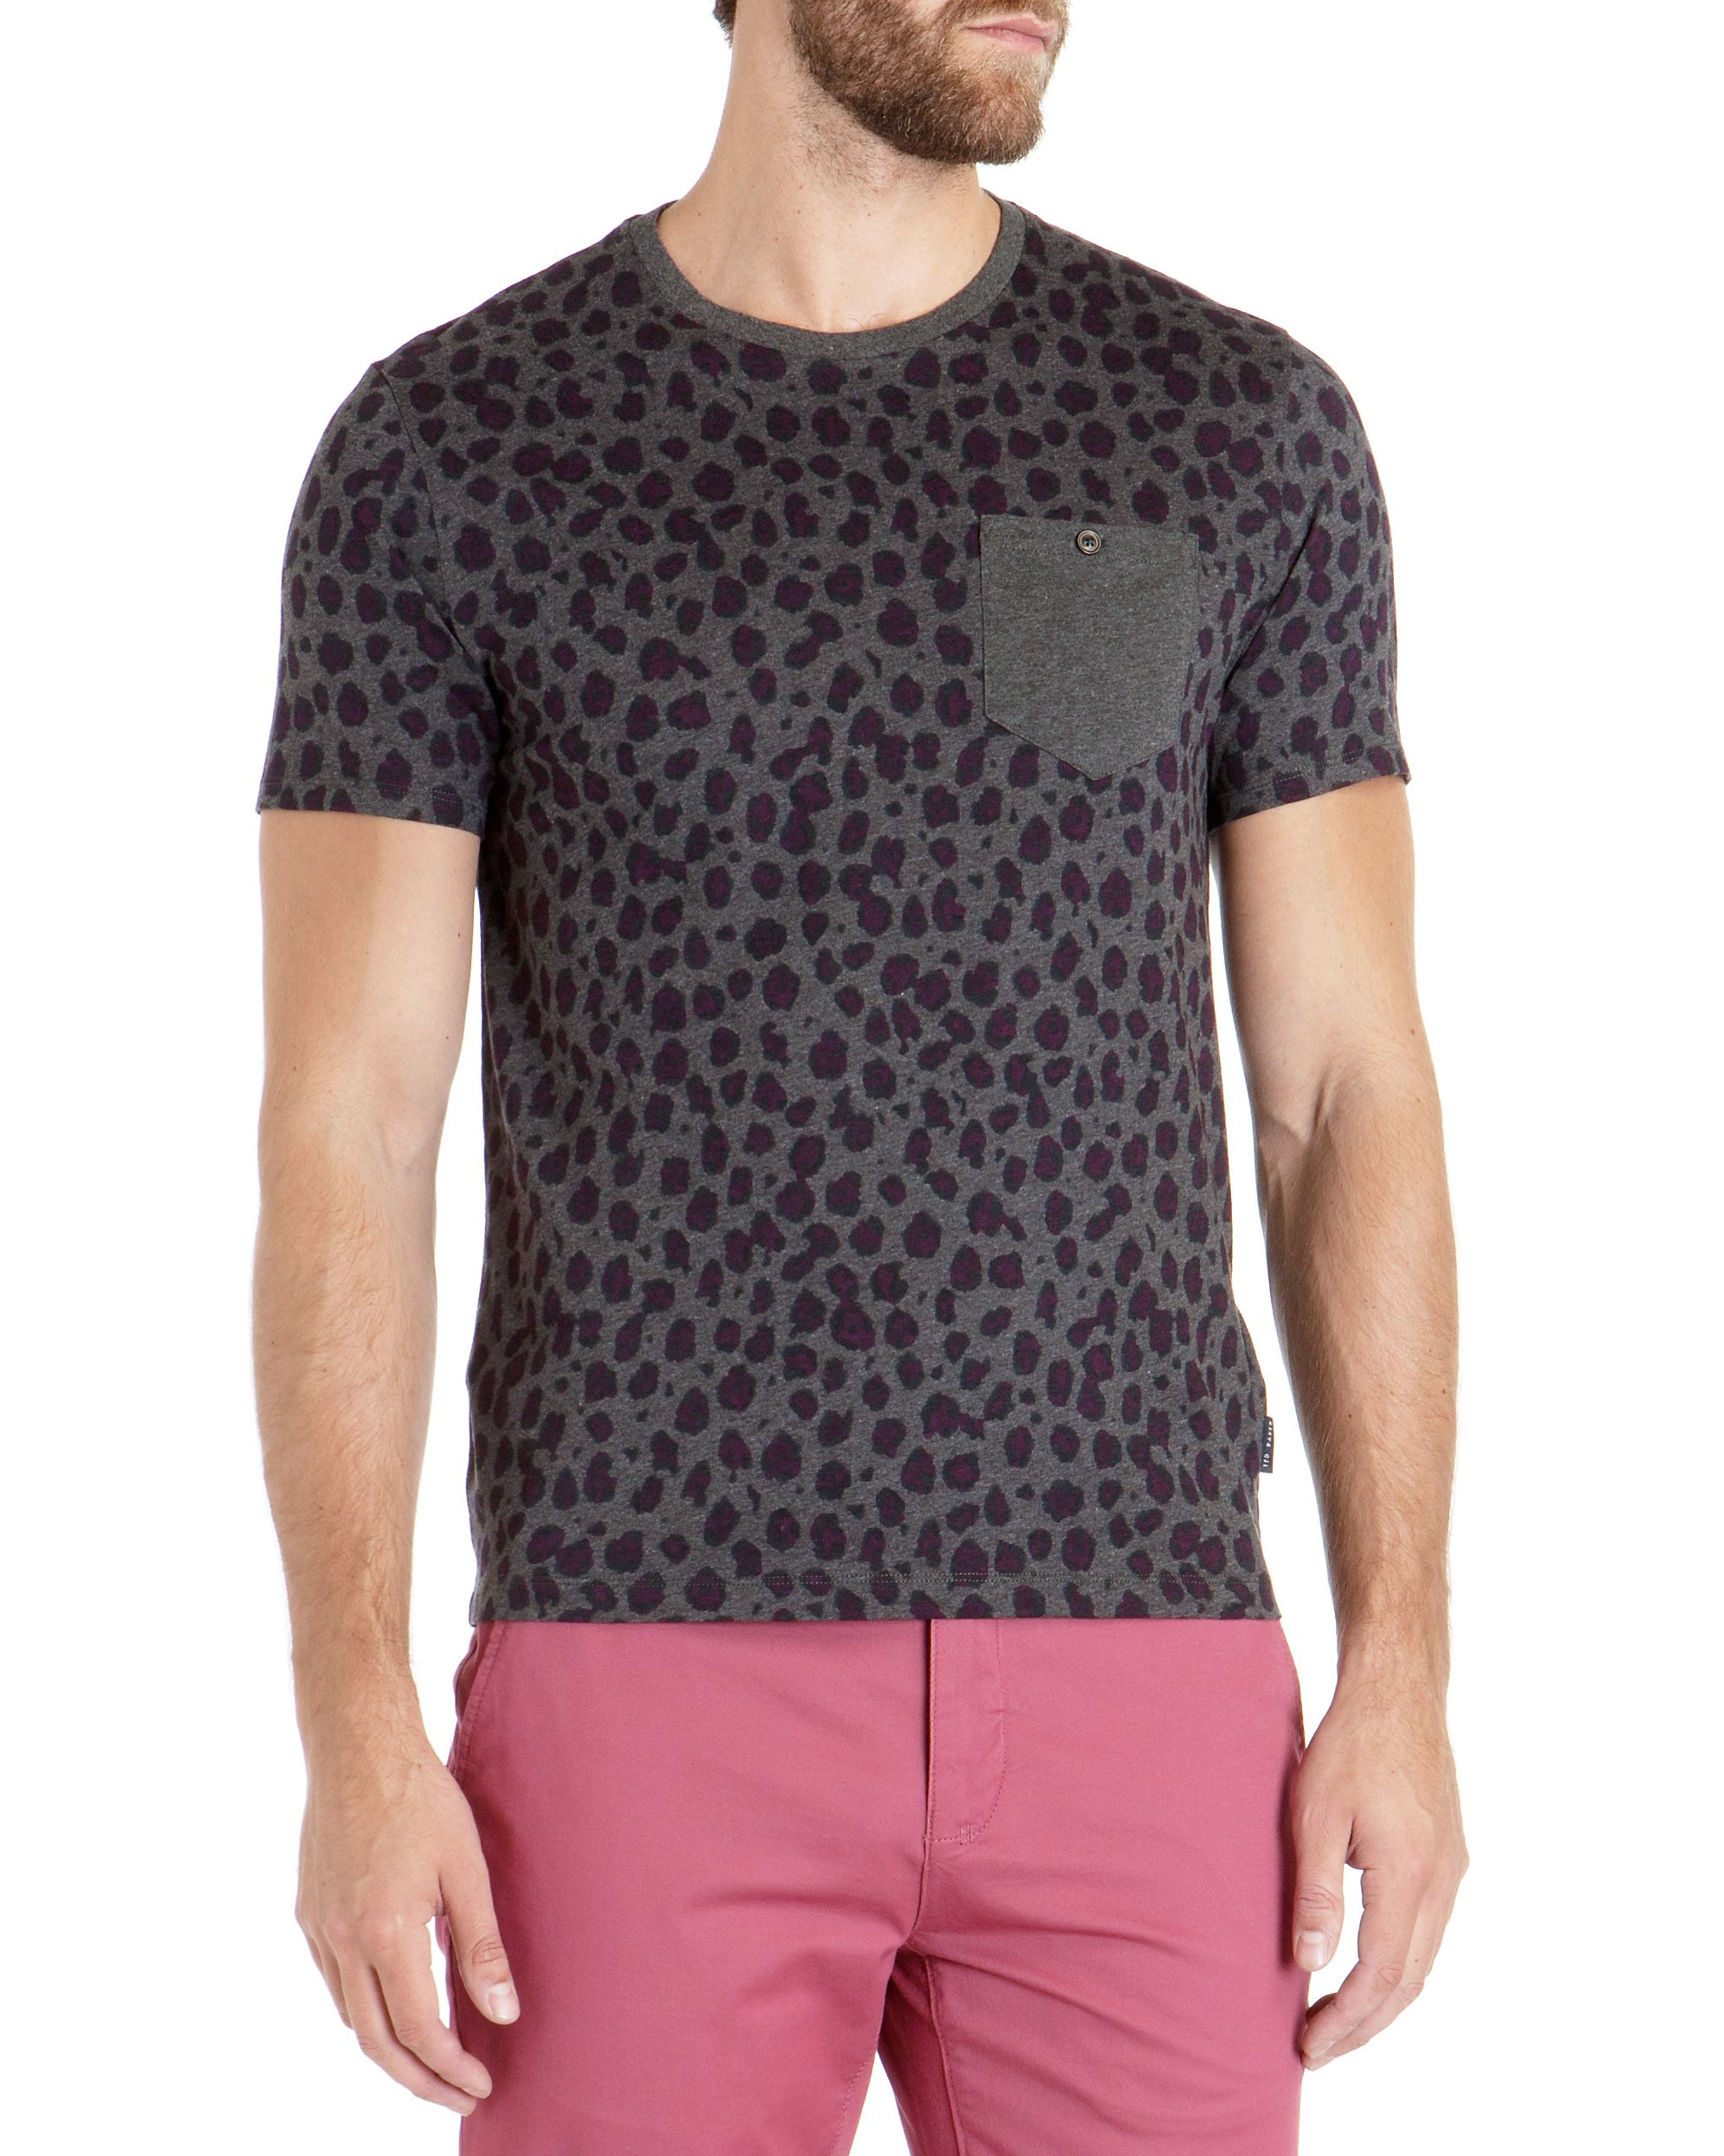 Colton leopard print top